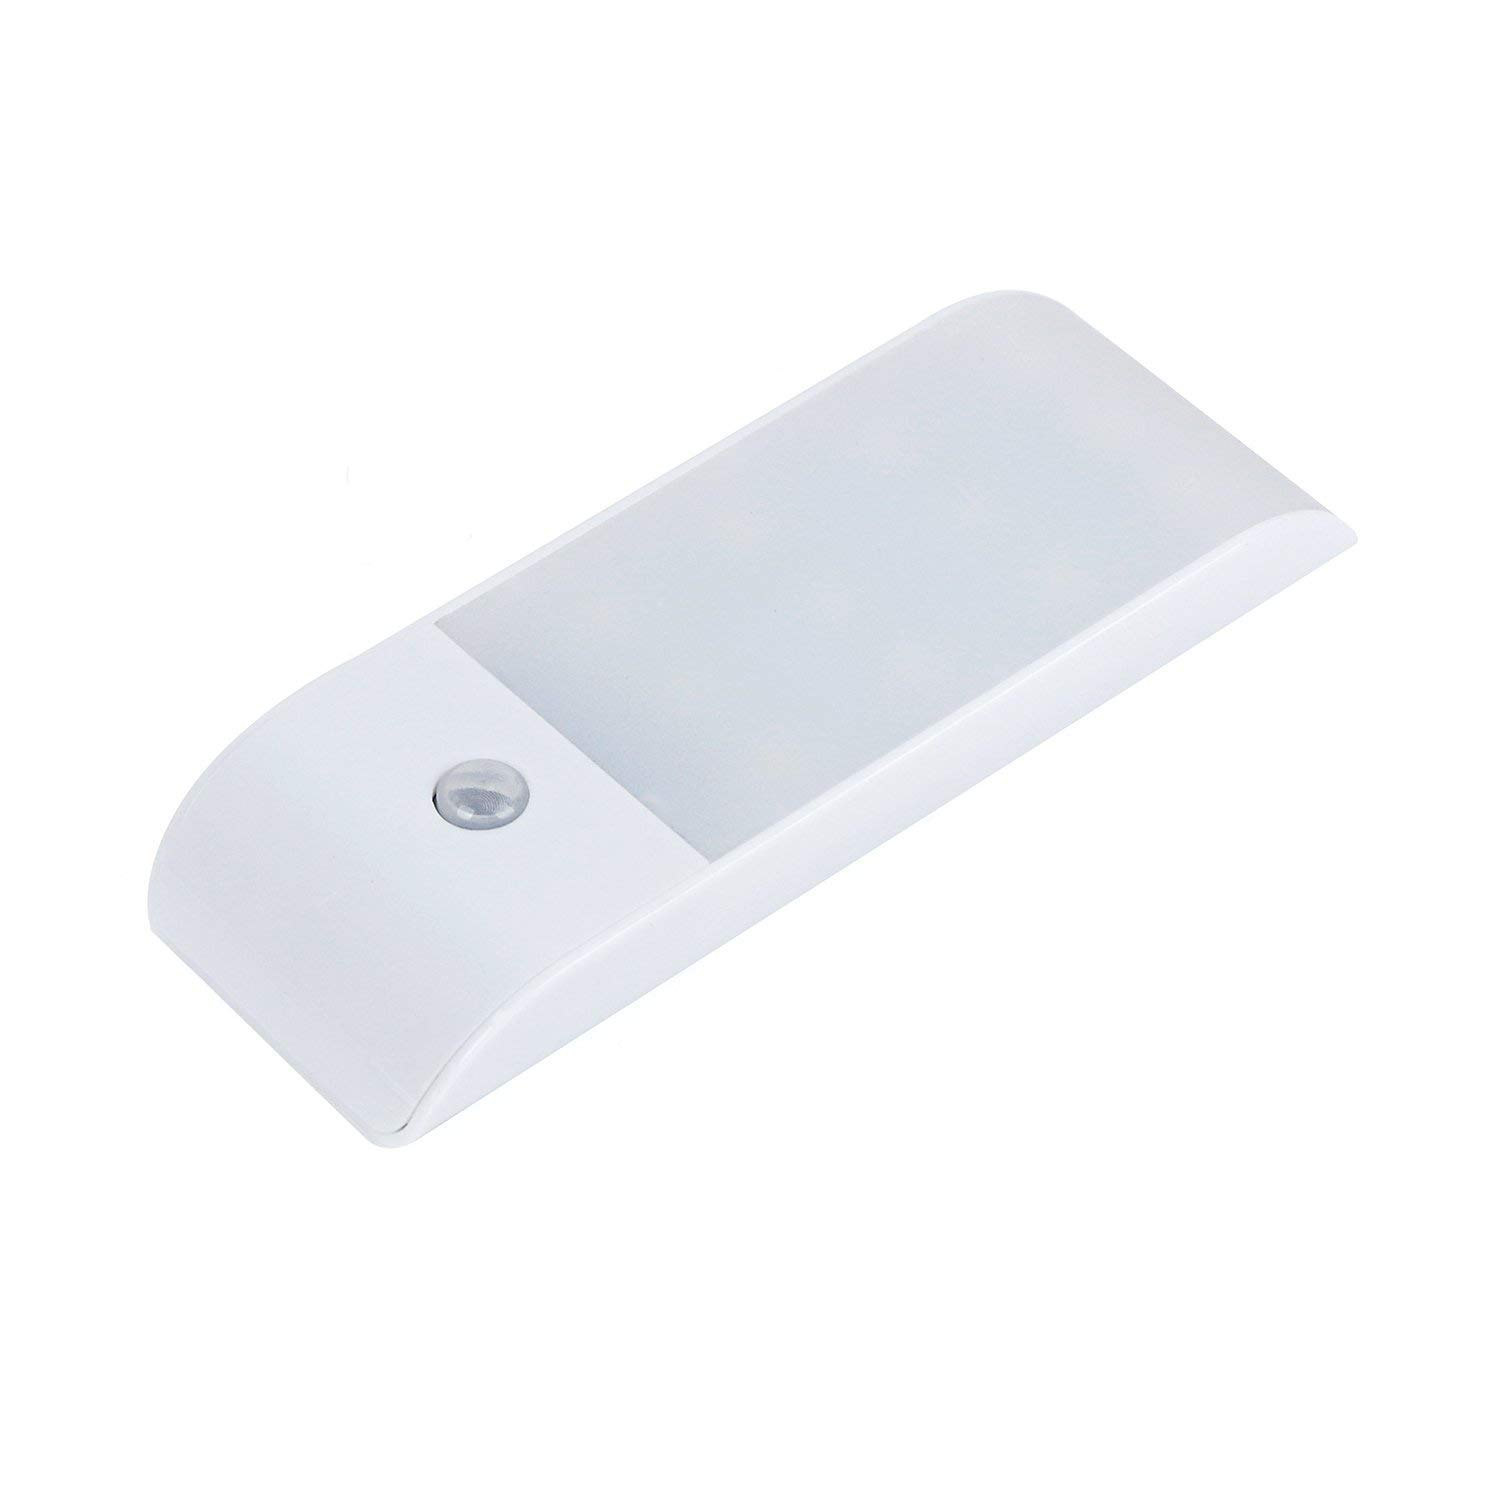 Motion Sensor Light, Wardrobe Light,Cupboard LED Lamp, USB Rechargeable Cabinet Lights Lamps 12 LEDs Removable Magnet Stick-On Anywhere/Closet/Stairs/Storage Room Under Counter Kitchen Shed Garage